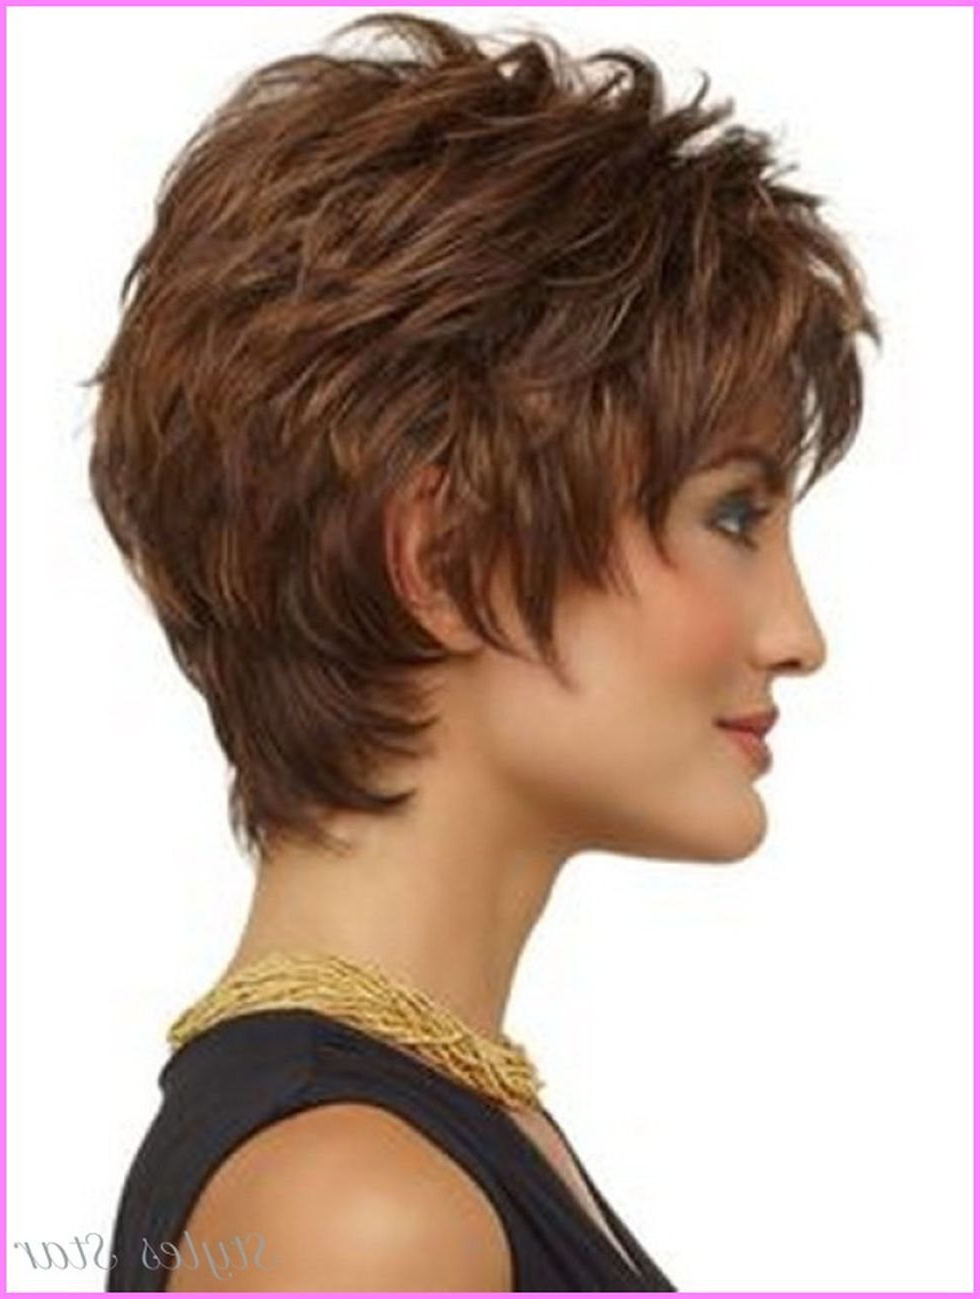 Best Of Wedge Haircuts For Women Pertaining To Wedge Short Haircuts (View 14 of 25)